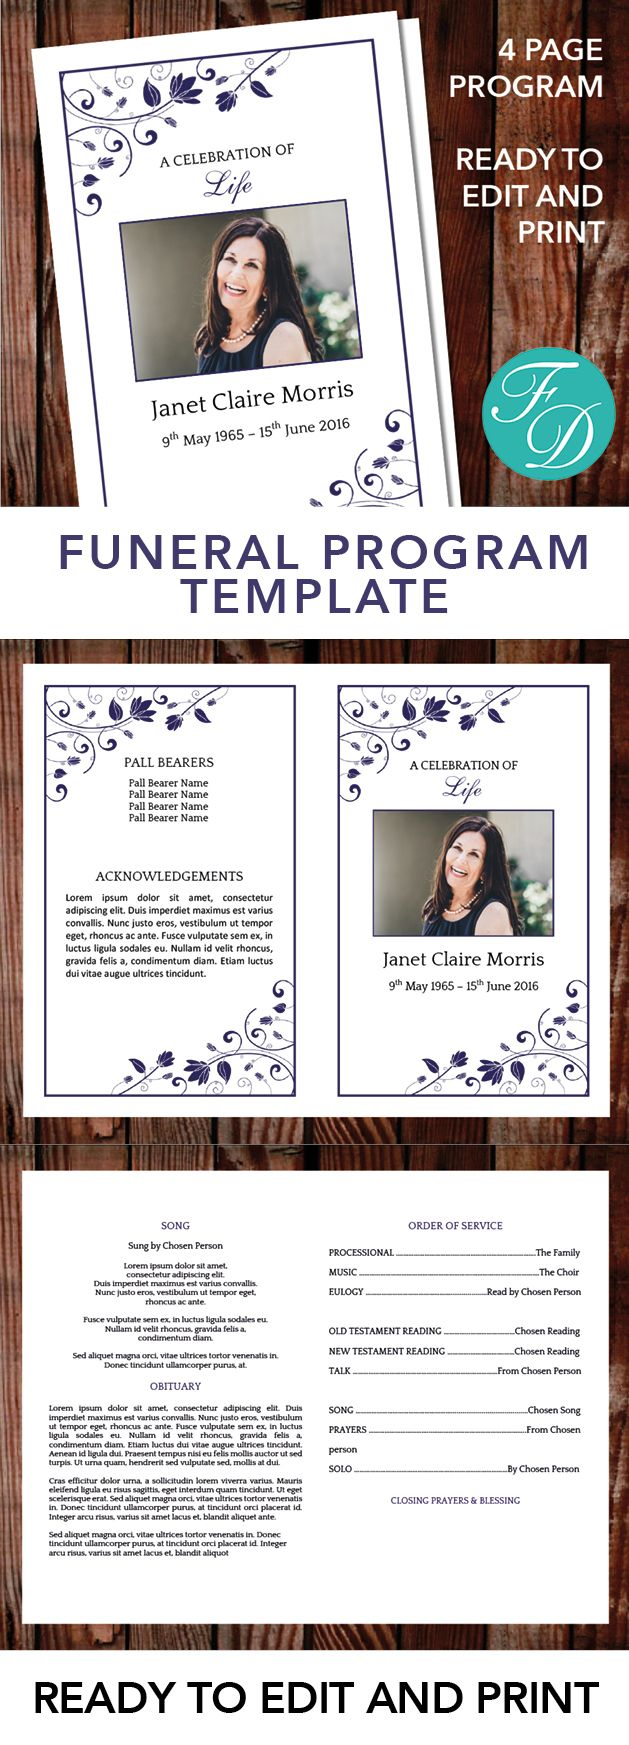 Blue Printable Funeral program ready to edit & print Simply purchase your funeral templates, download, edit with Microsoft Word and print. #obituarytemplate #memorialprogram #funeralprograms #funeraltemplate #printableprogram #celebrationoflife